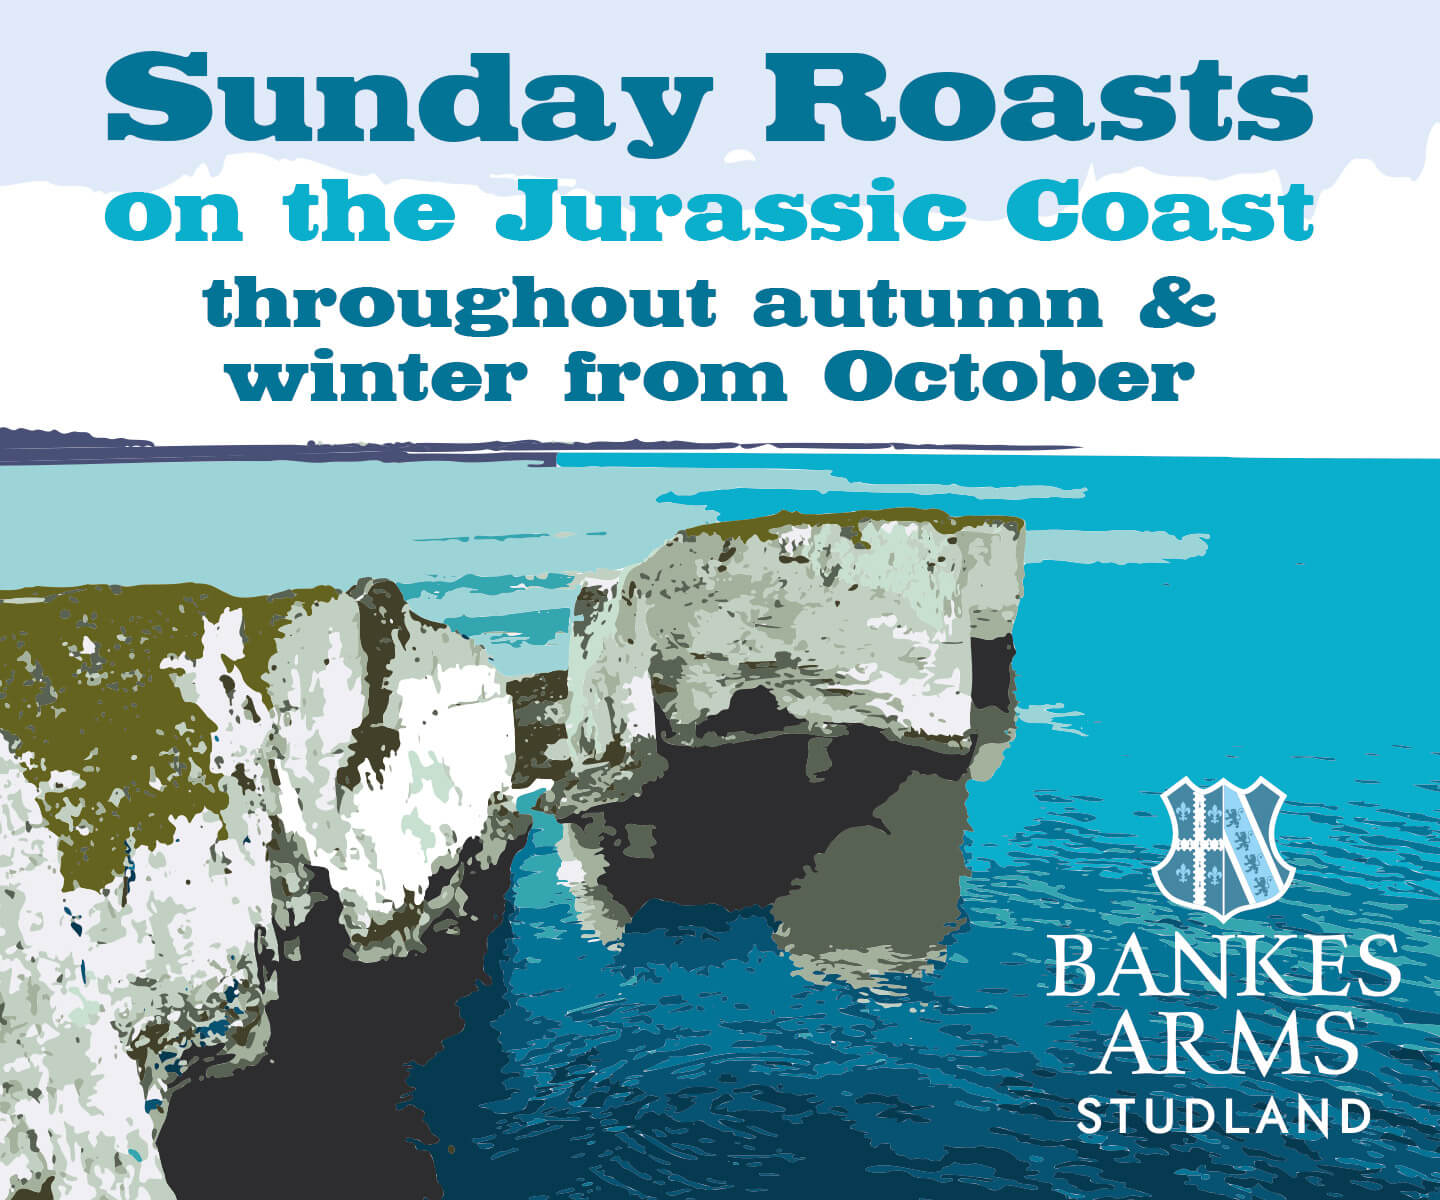 Sunday Roasts on the Jurassic Coast at the Bankes Arms